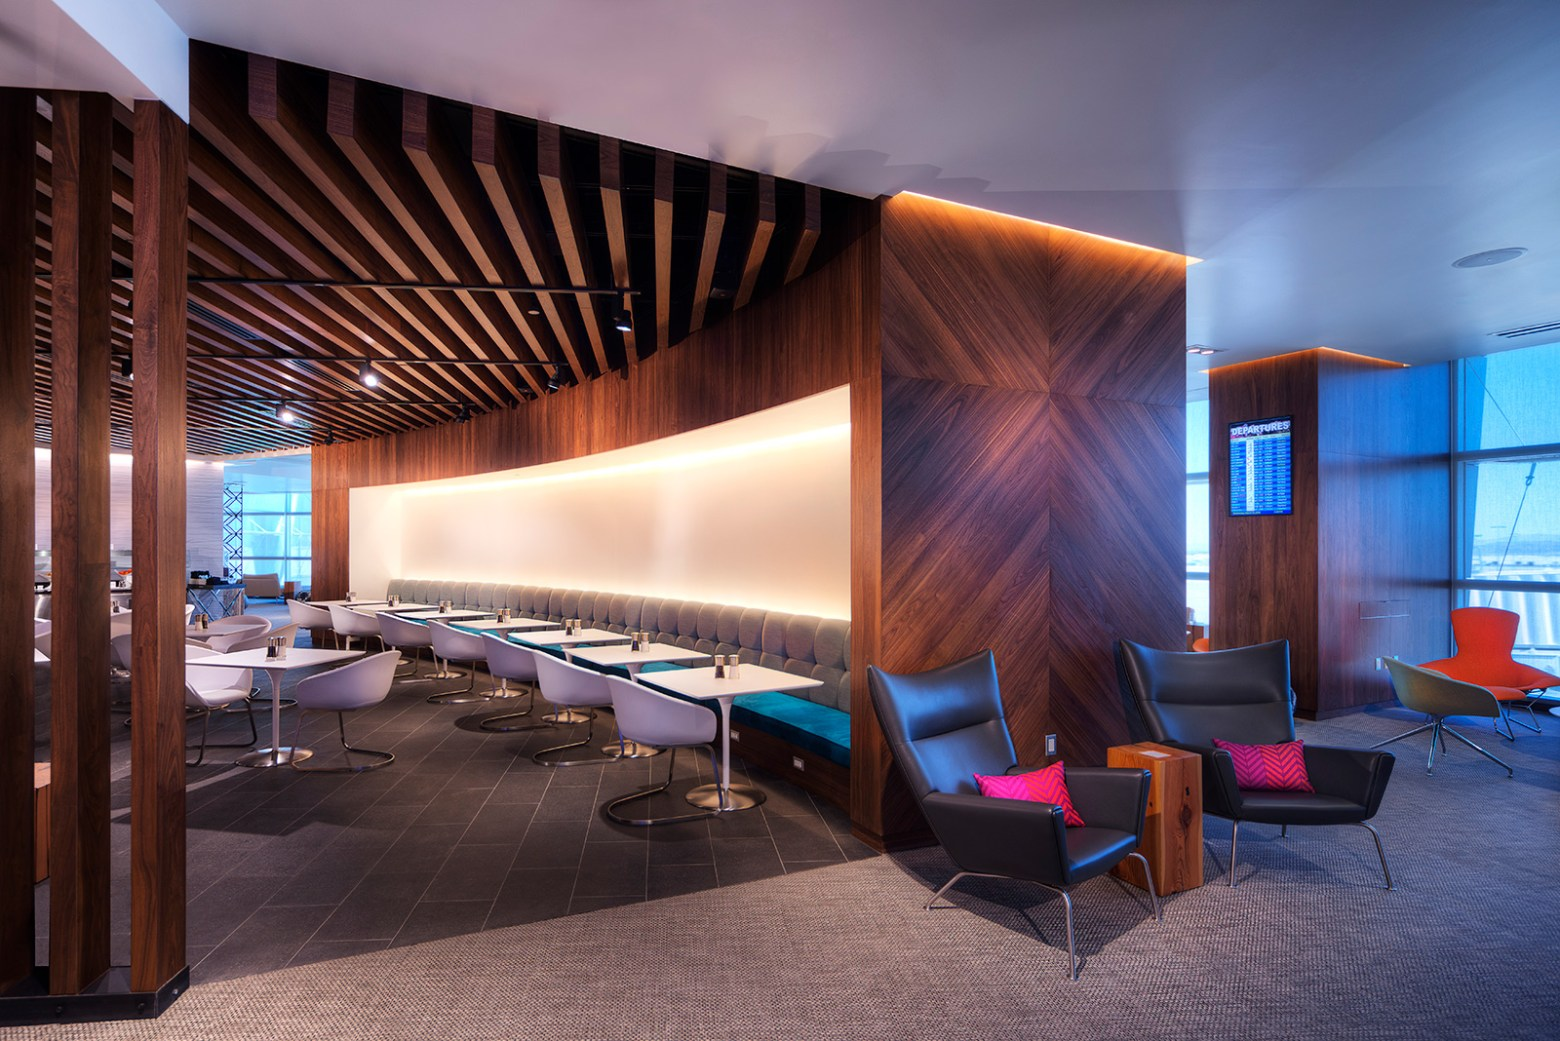 Best Airline Lounges 2019